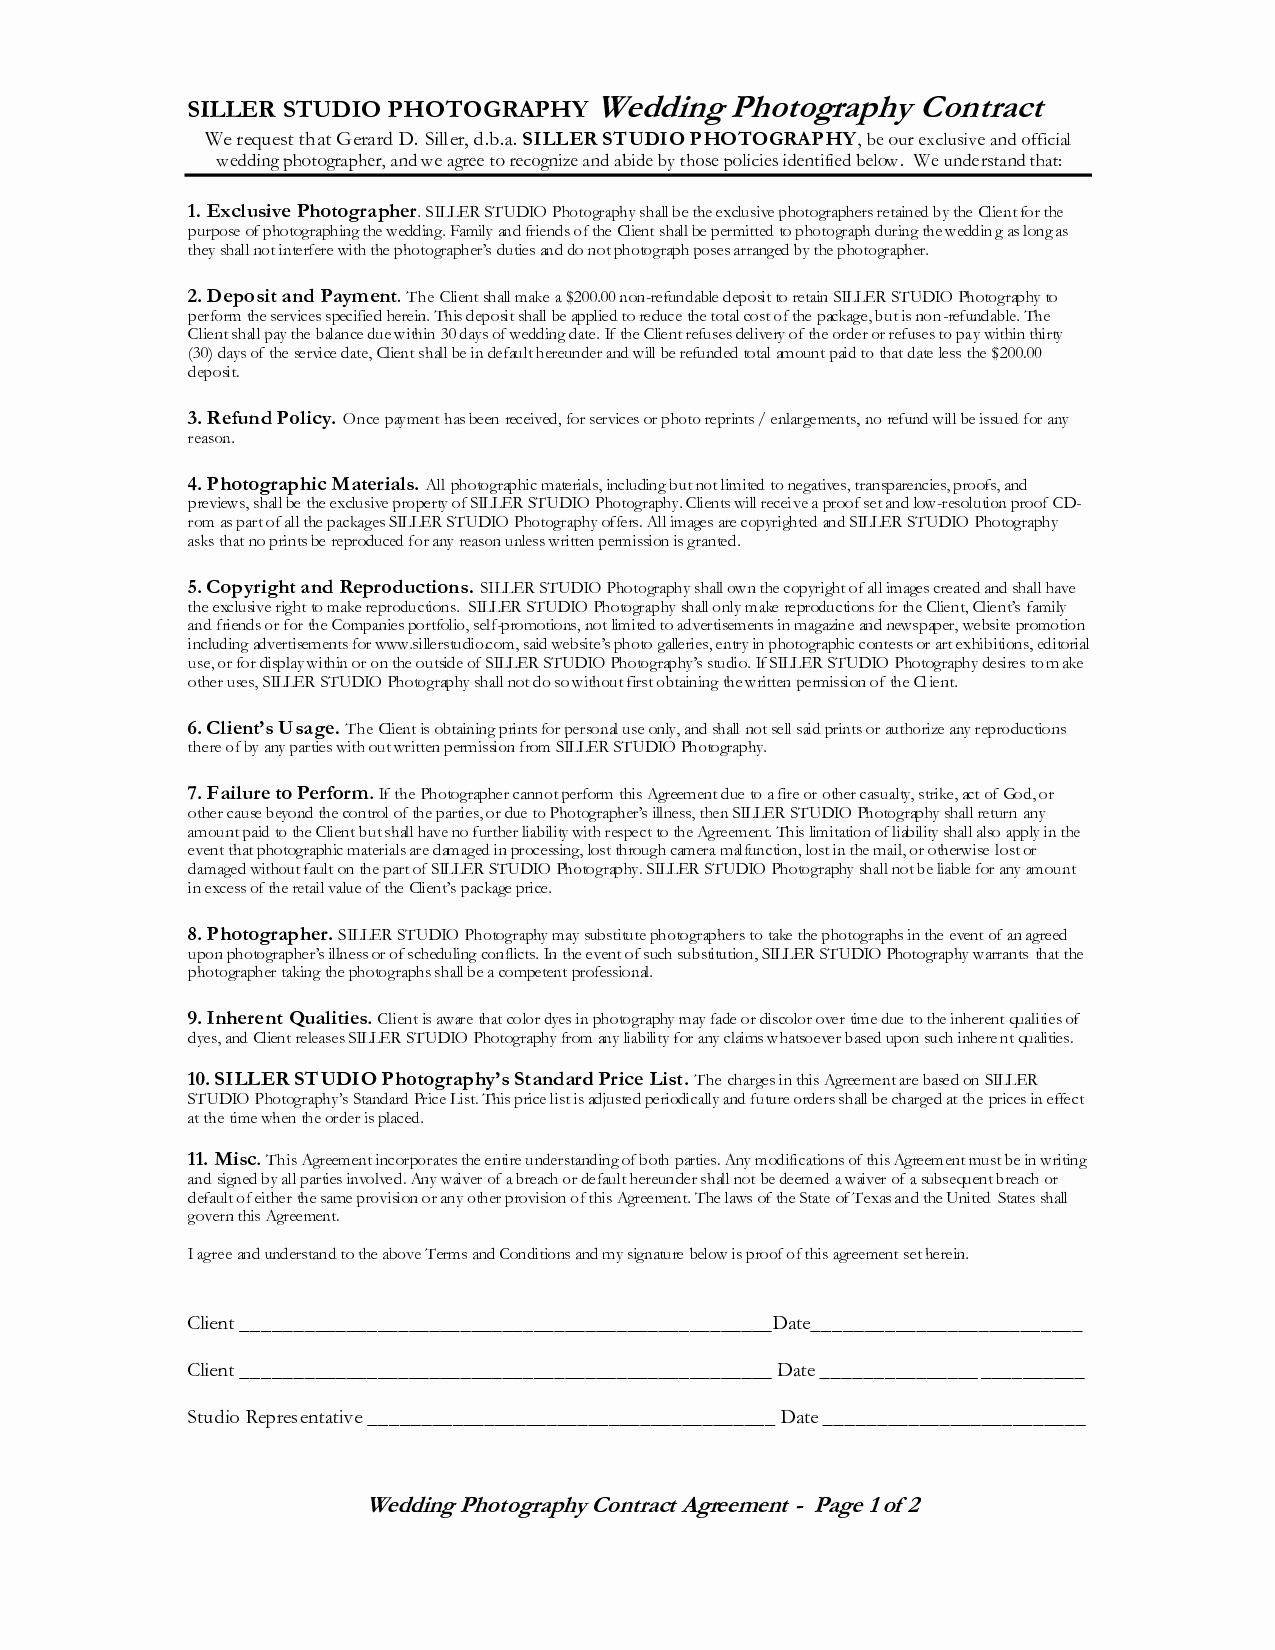 Wedding Videography Contract Template New Wedding Graphy Contract = 4 = Wedding Graphy